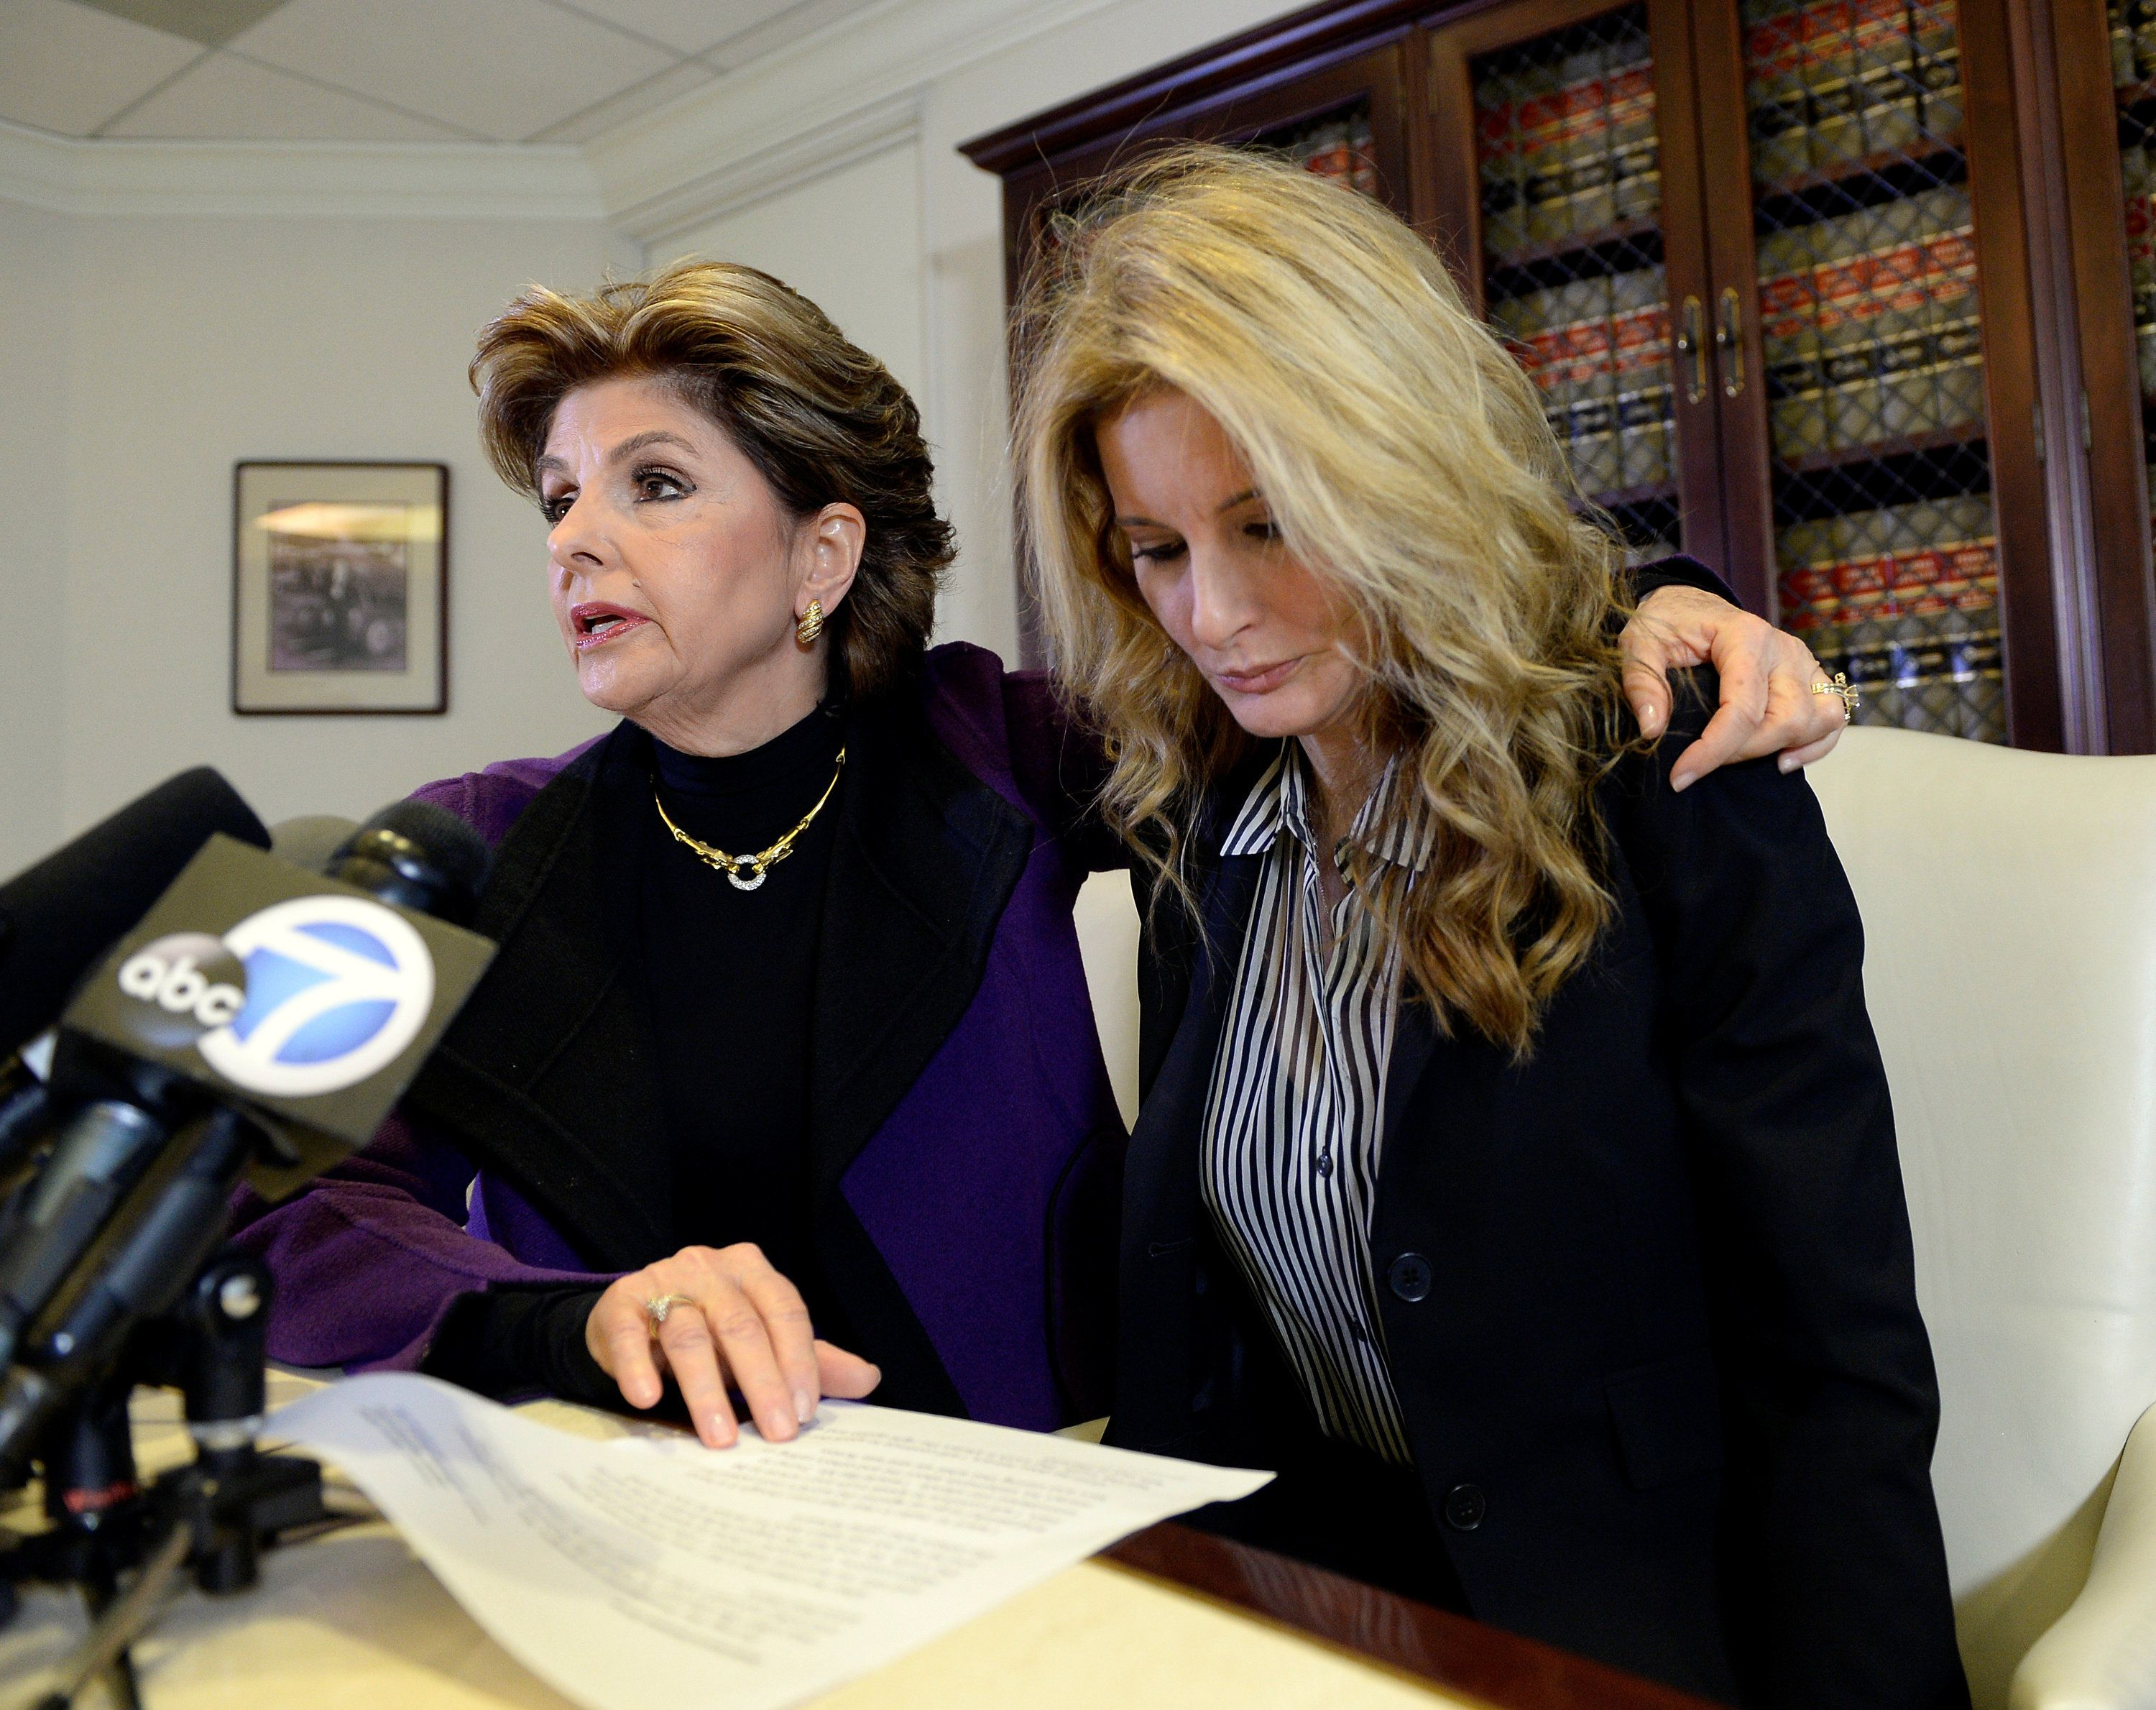 Summer Zervos (R) speaks to reporters about allegations of sexual misconduct against Donald Trump, alongside lawyer Gloria Allred, during a news conference in Los Angeles, California, U.S. November 11, 2016. REUTERS/Kevork Djansezian